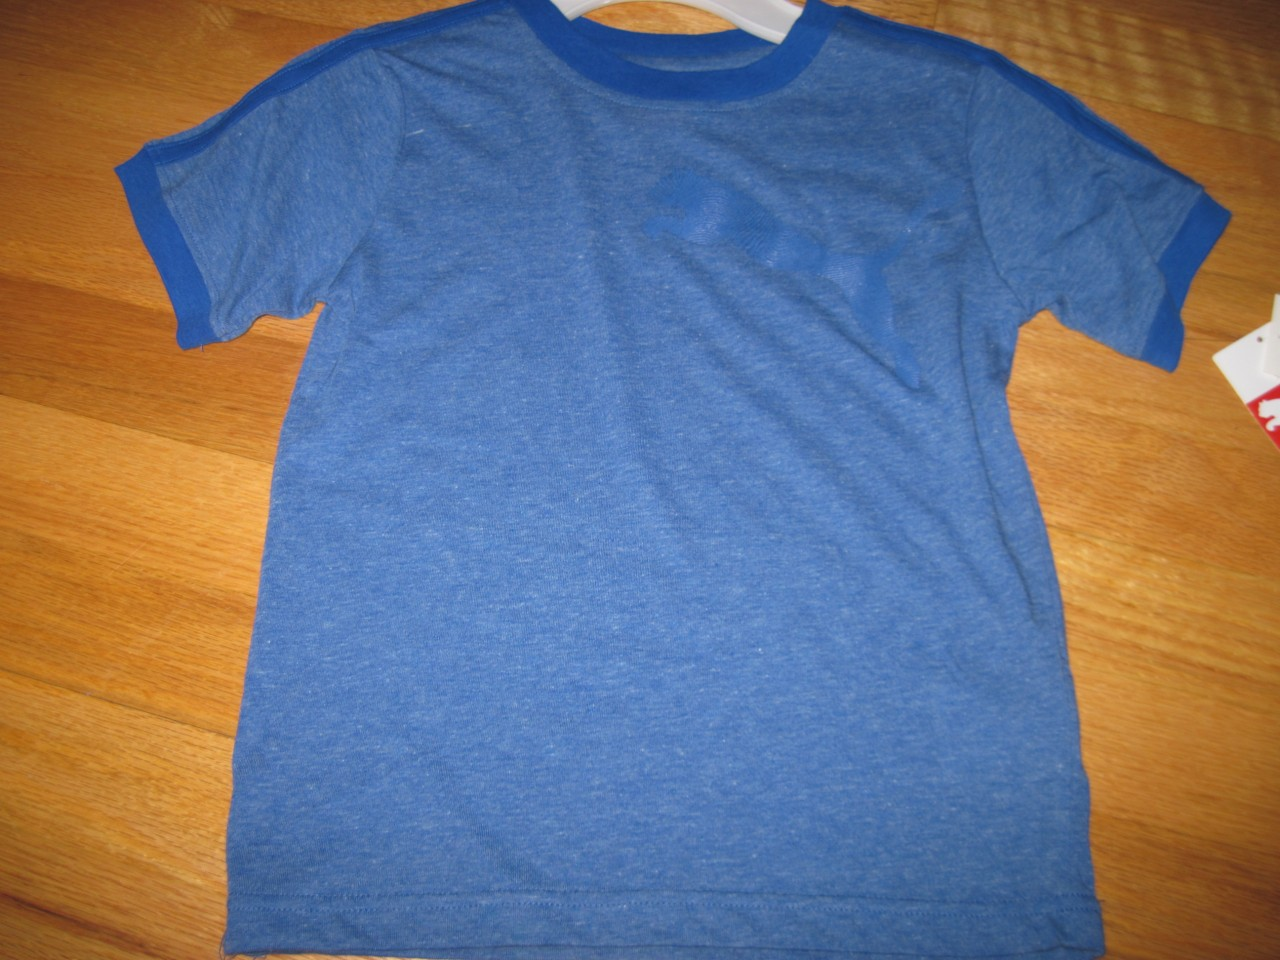 Puma Very Soft T Shirt For Boys Size 5 Blue Available Nwt